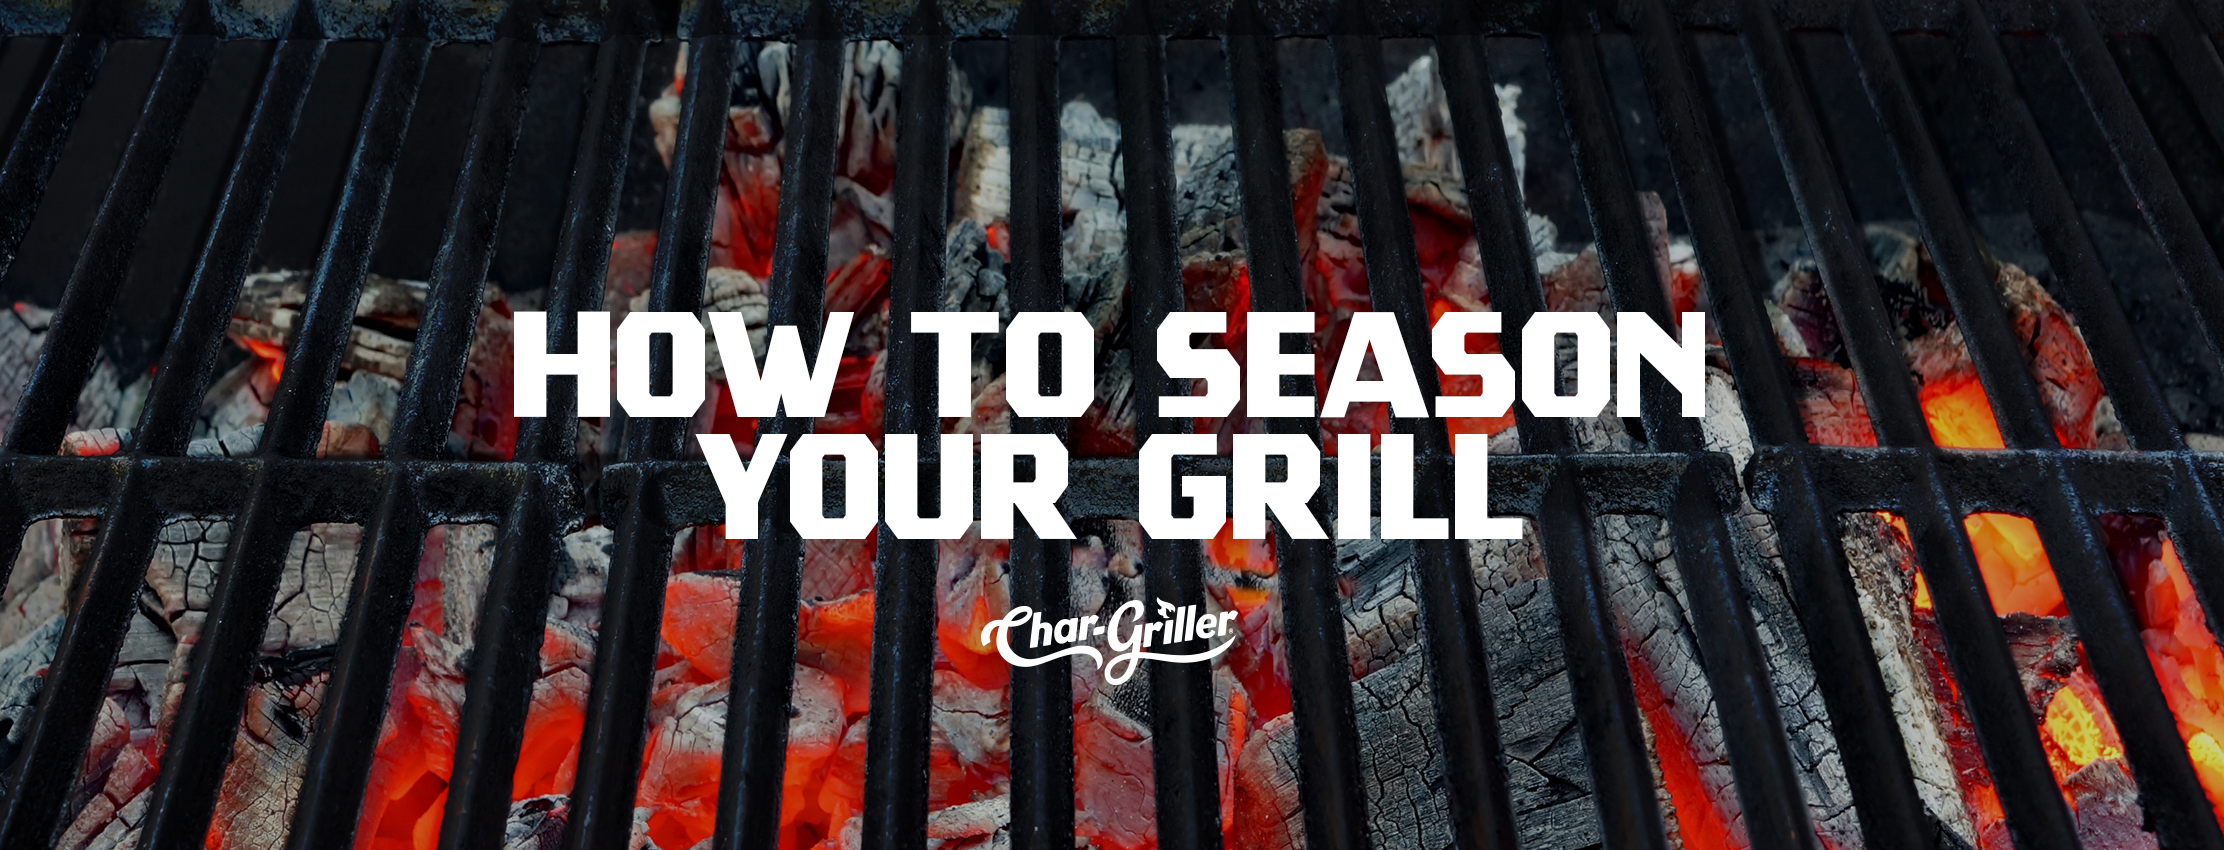 How to Season Your Grill